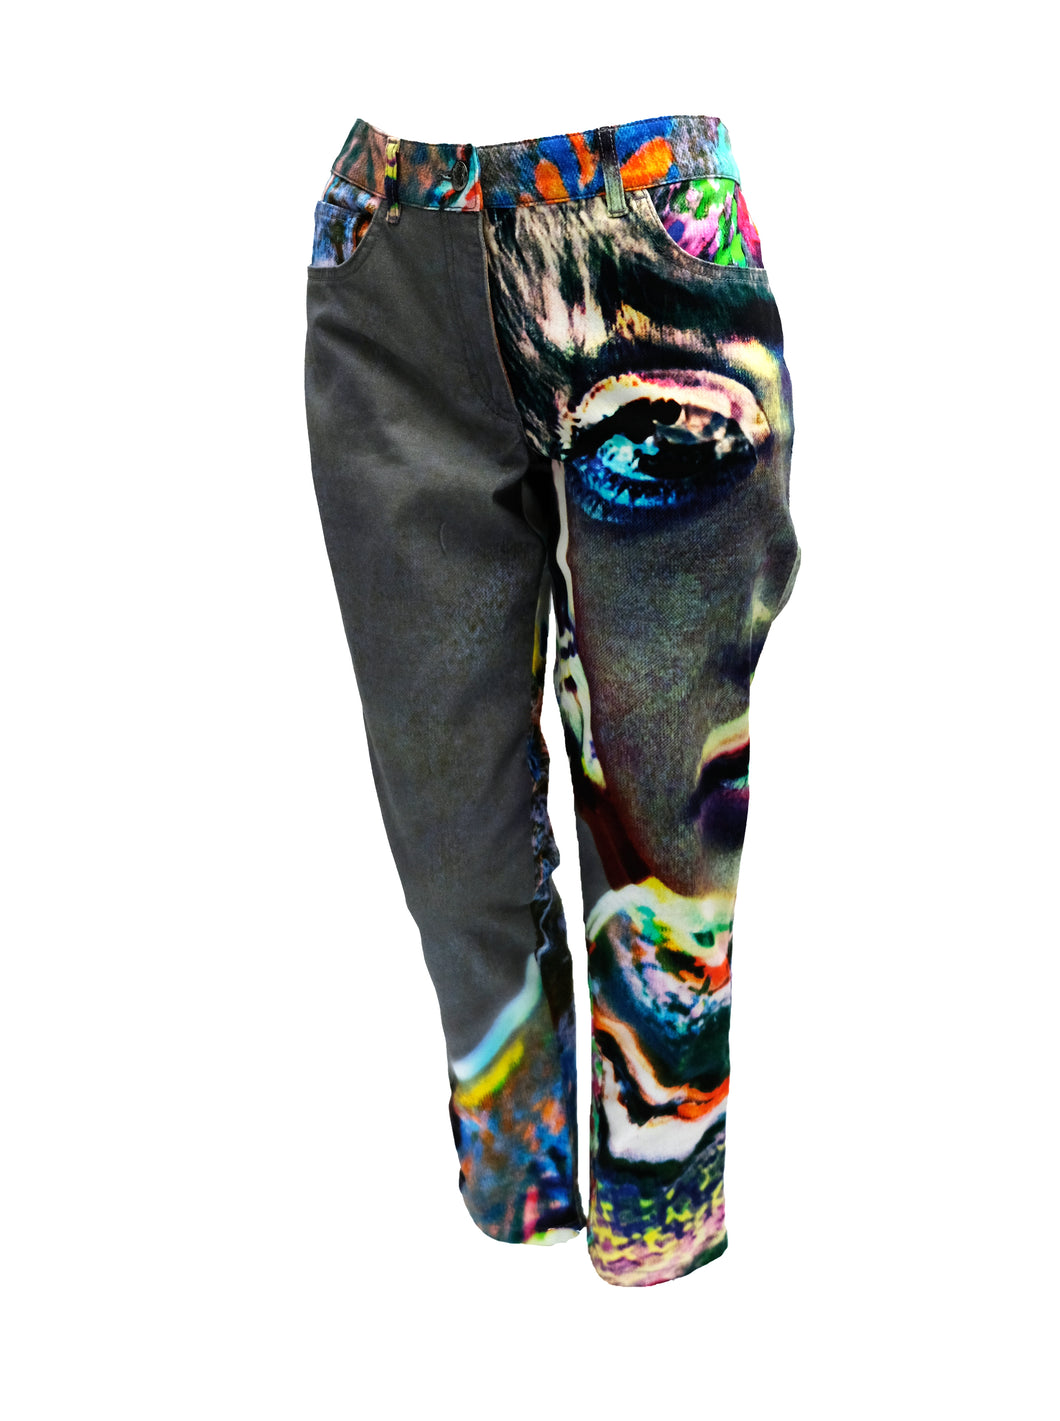 Escada Jeans in Psychedelic Fantasy Print, UK12